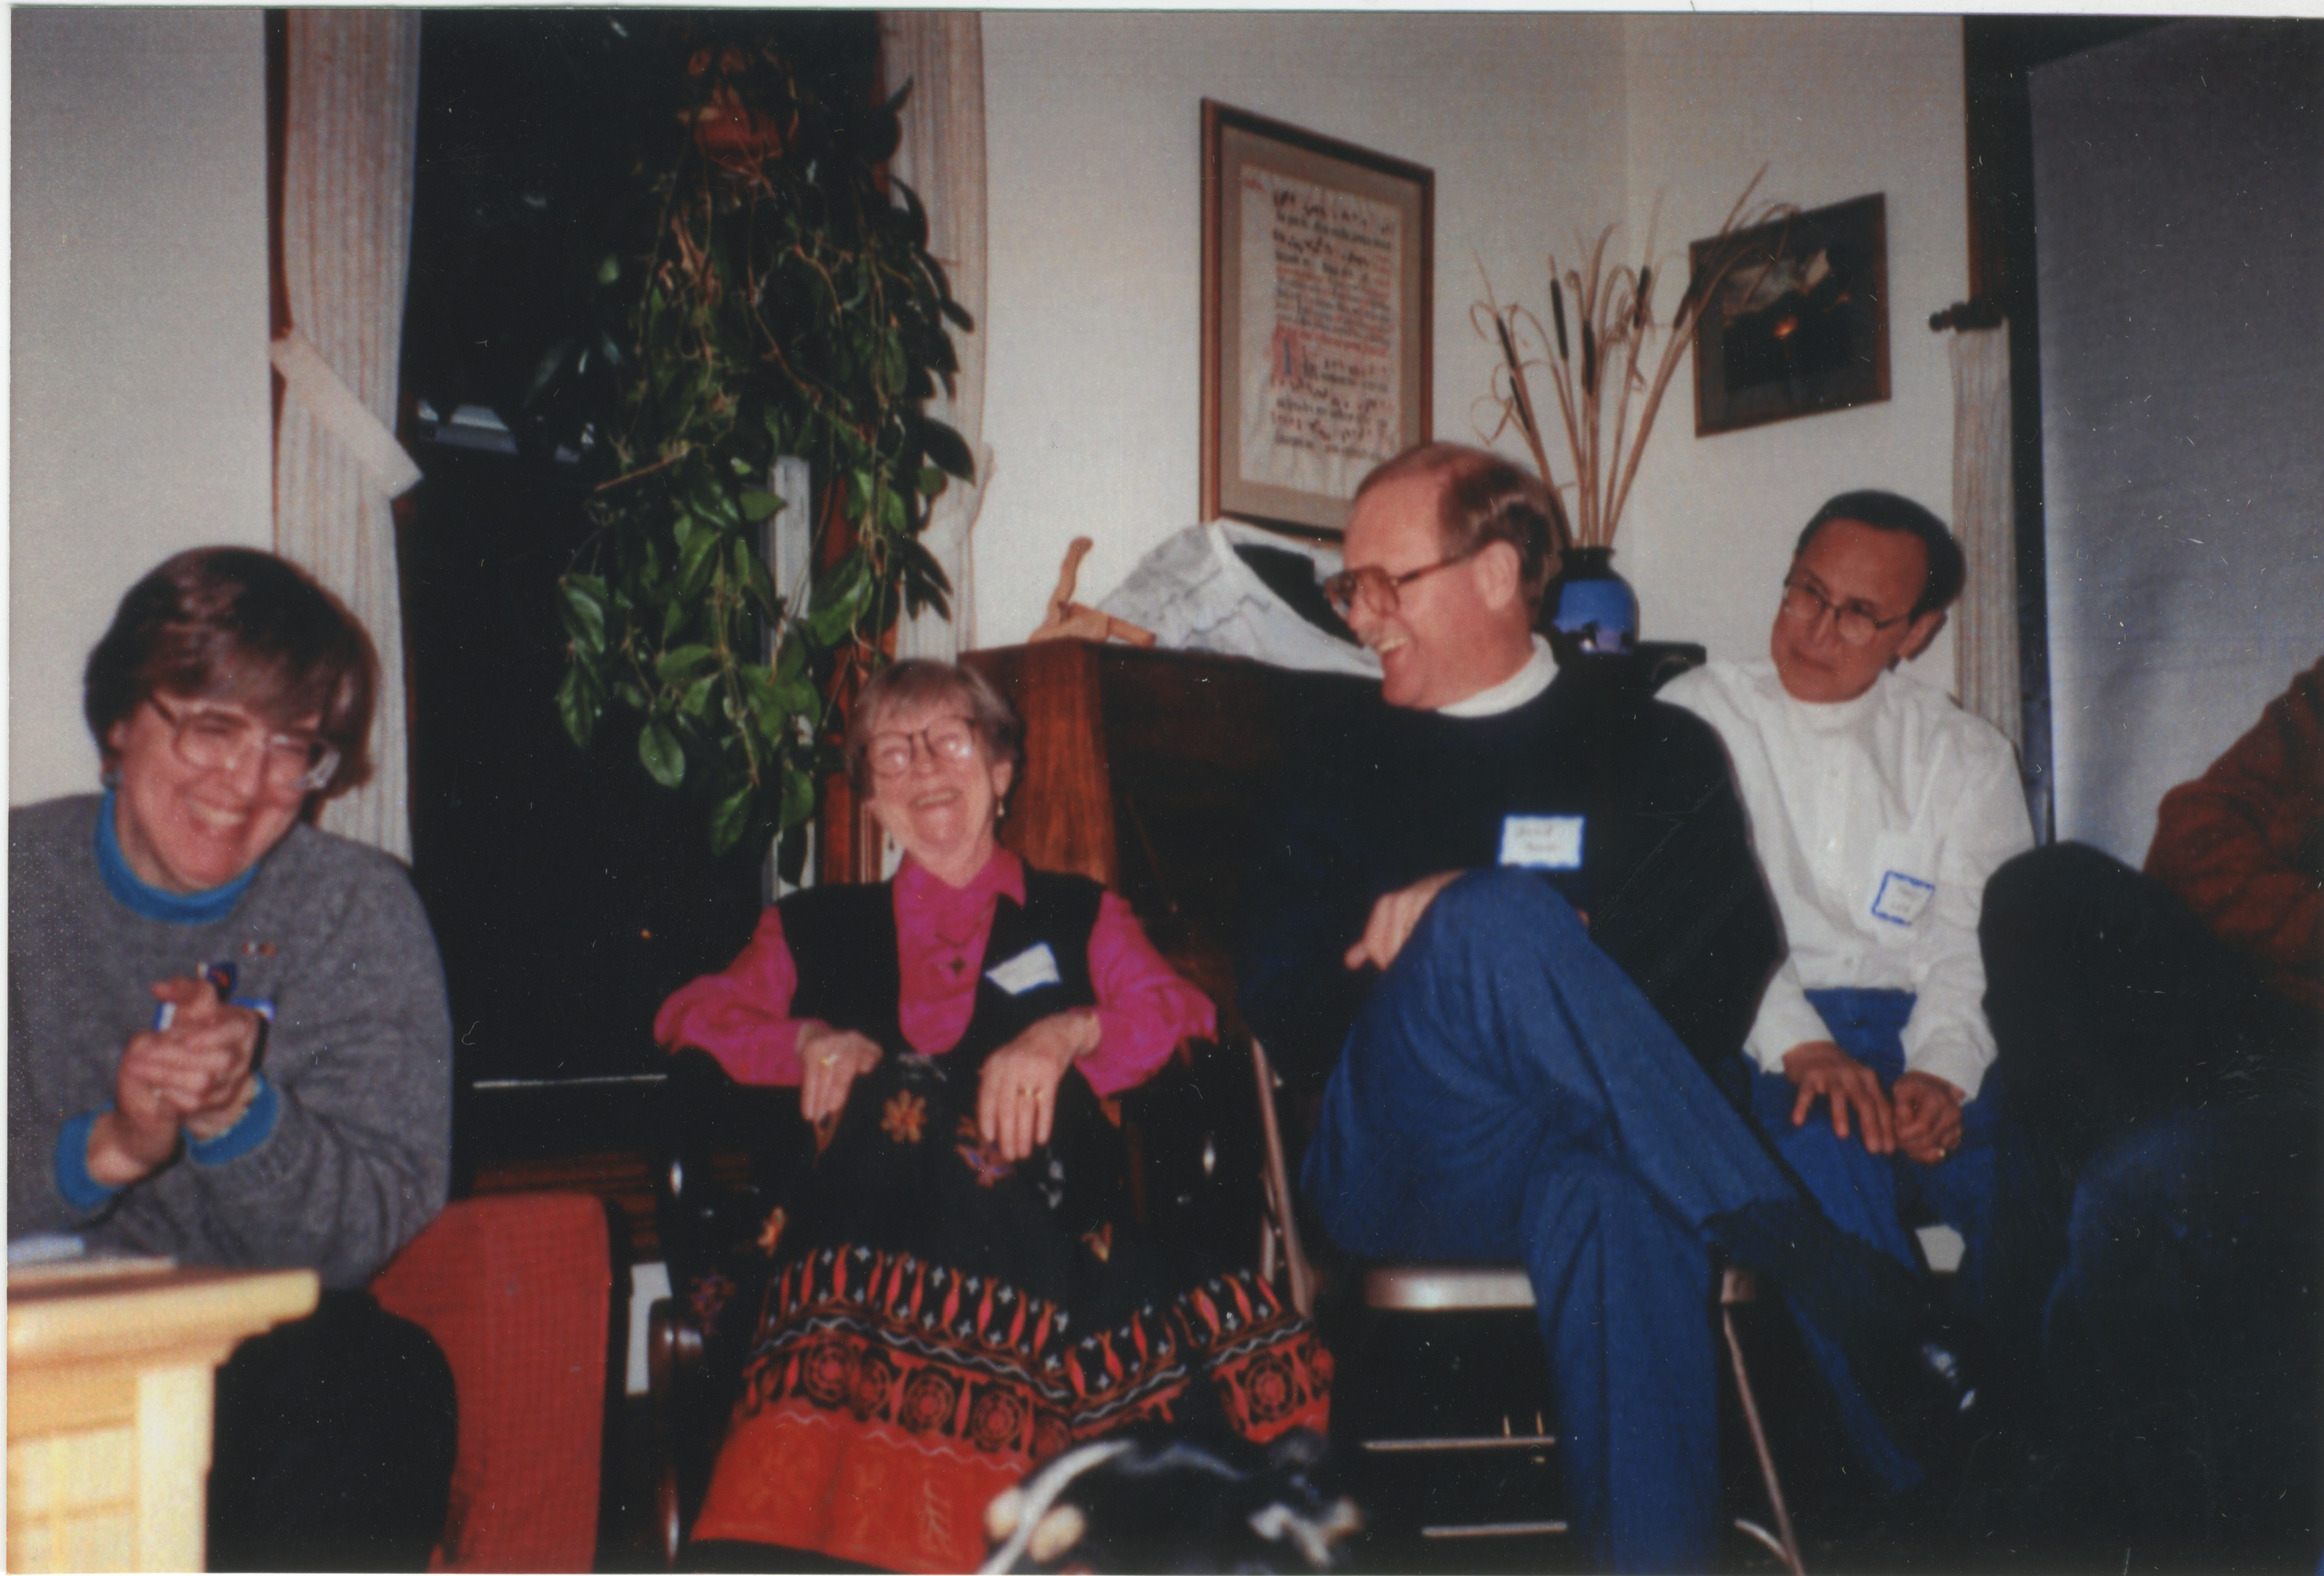 Interfaith Council for Peace and Justice: 30th Anniversary Potluck, 1996 image